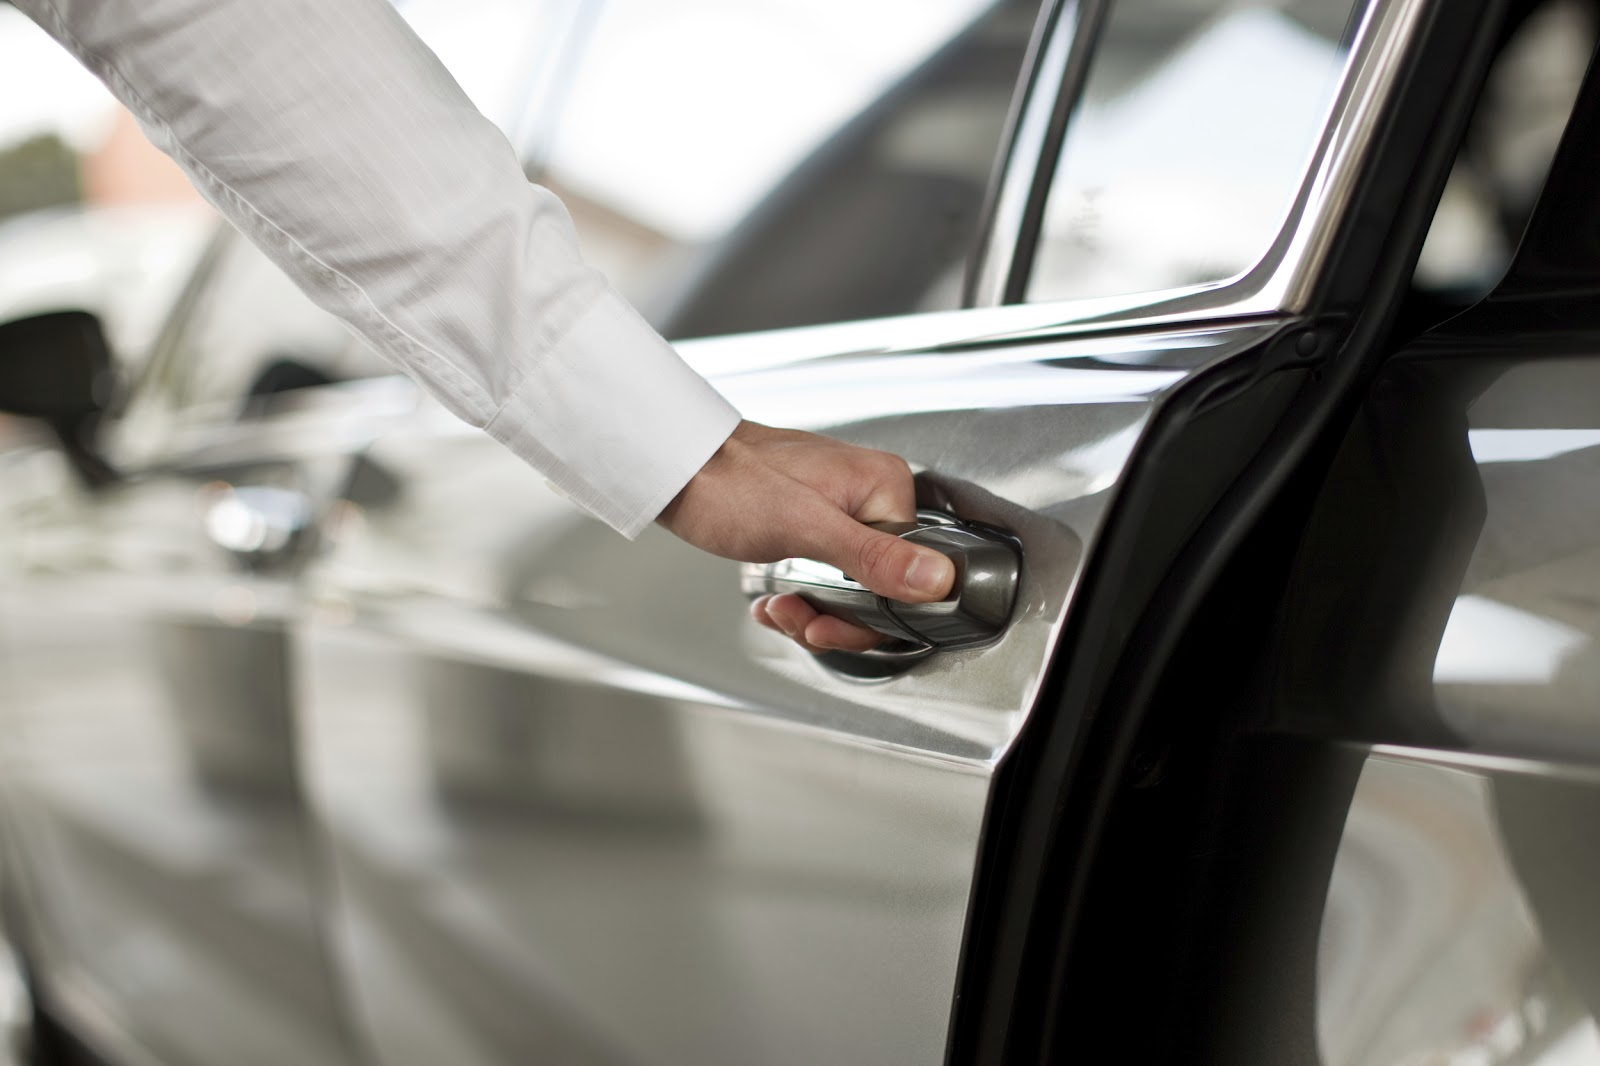 Pulling the handle of the rear driver-side door on a passenger vehicle.